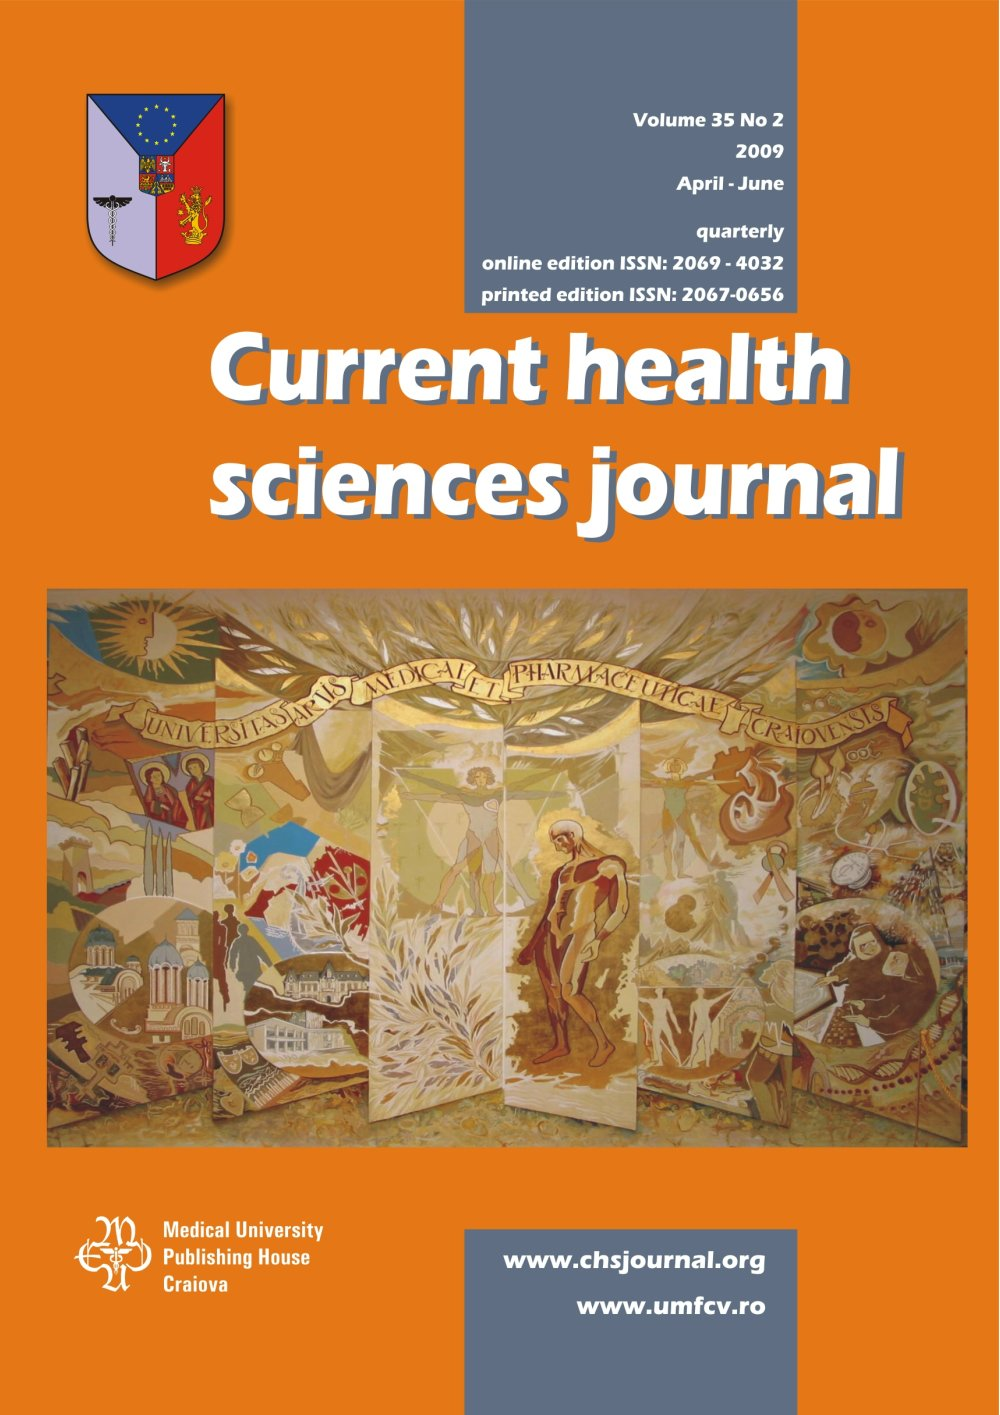 Current Health Sciences Journal, vol. 35 no. 2, 2009